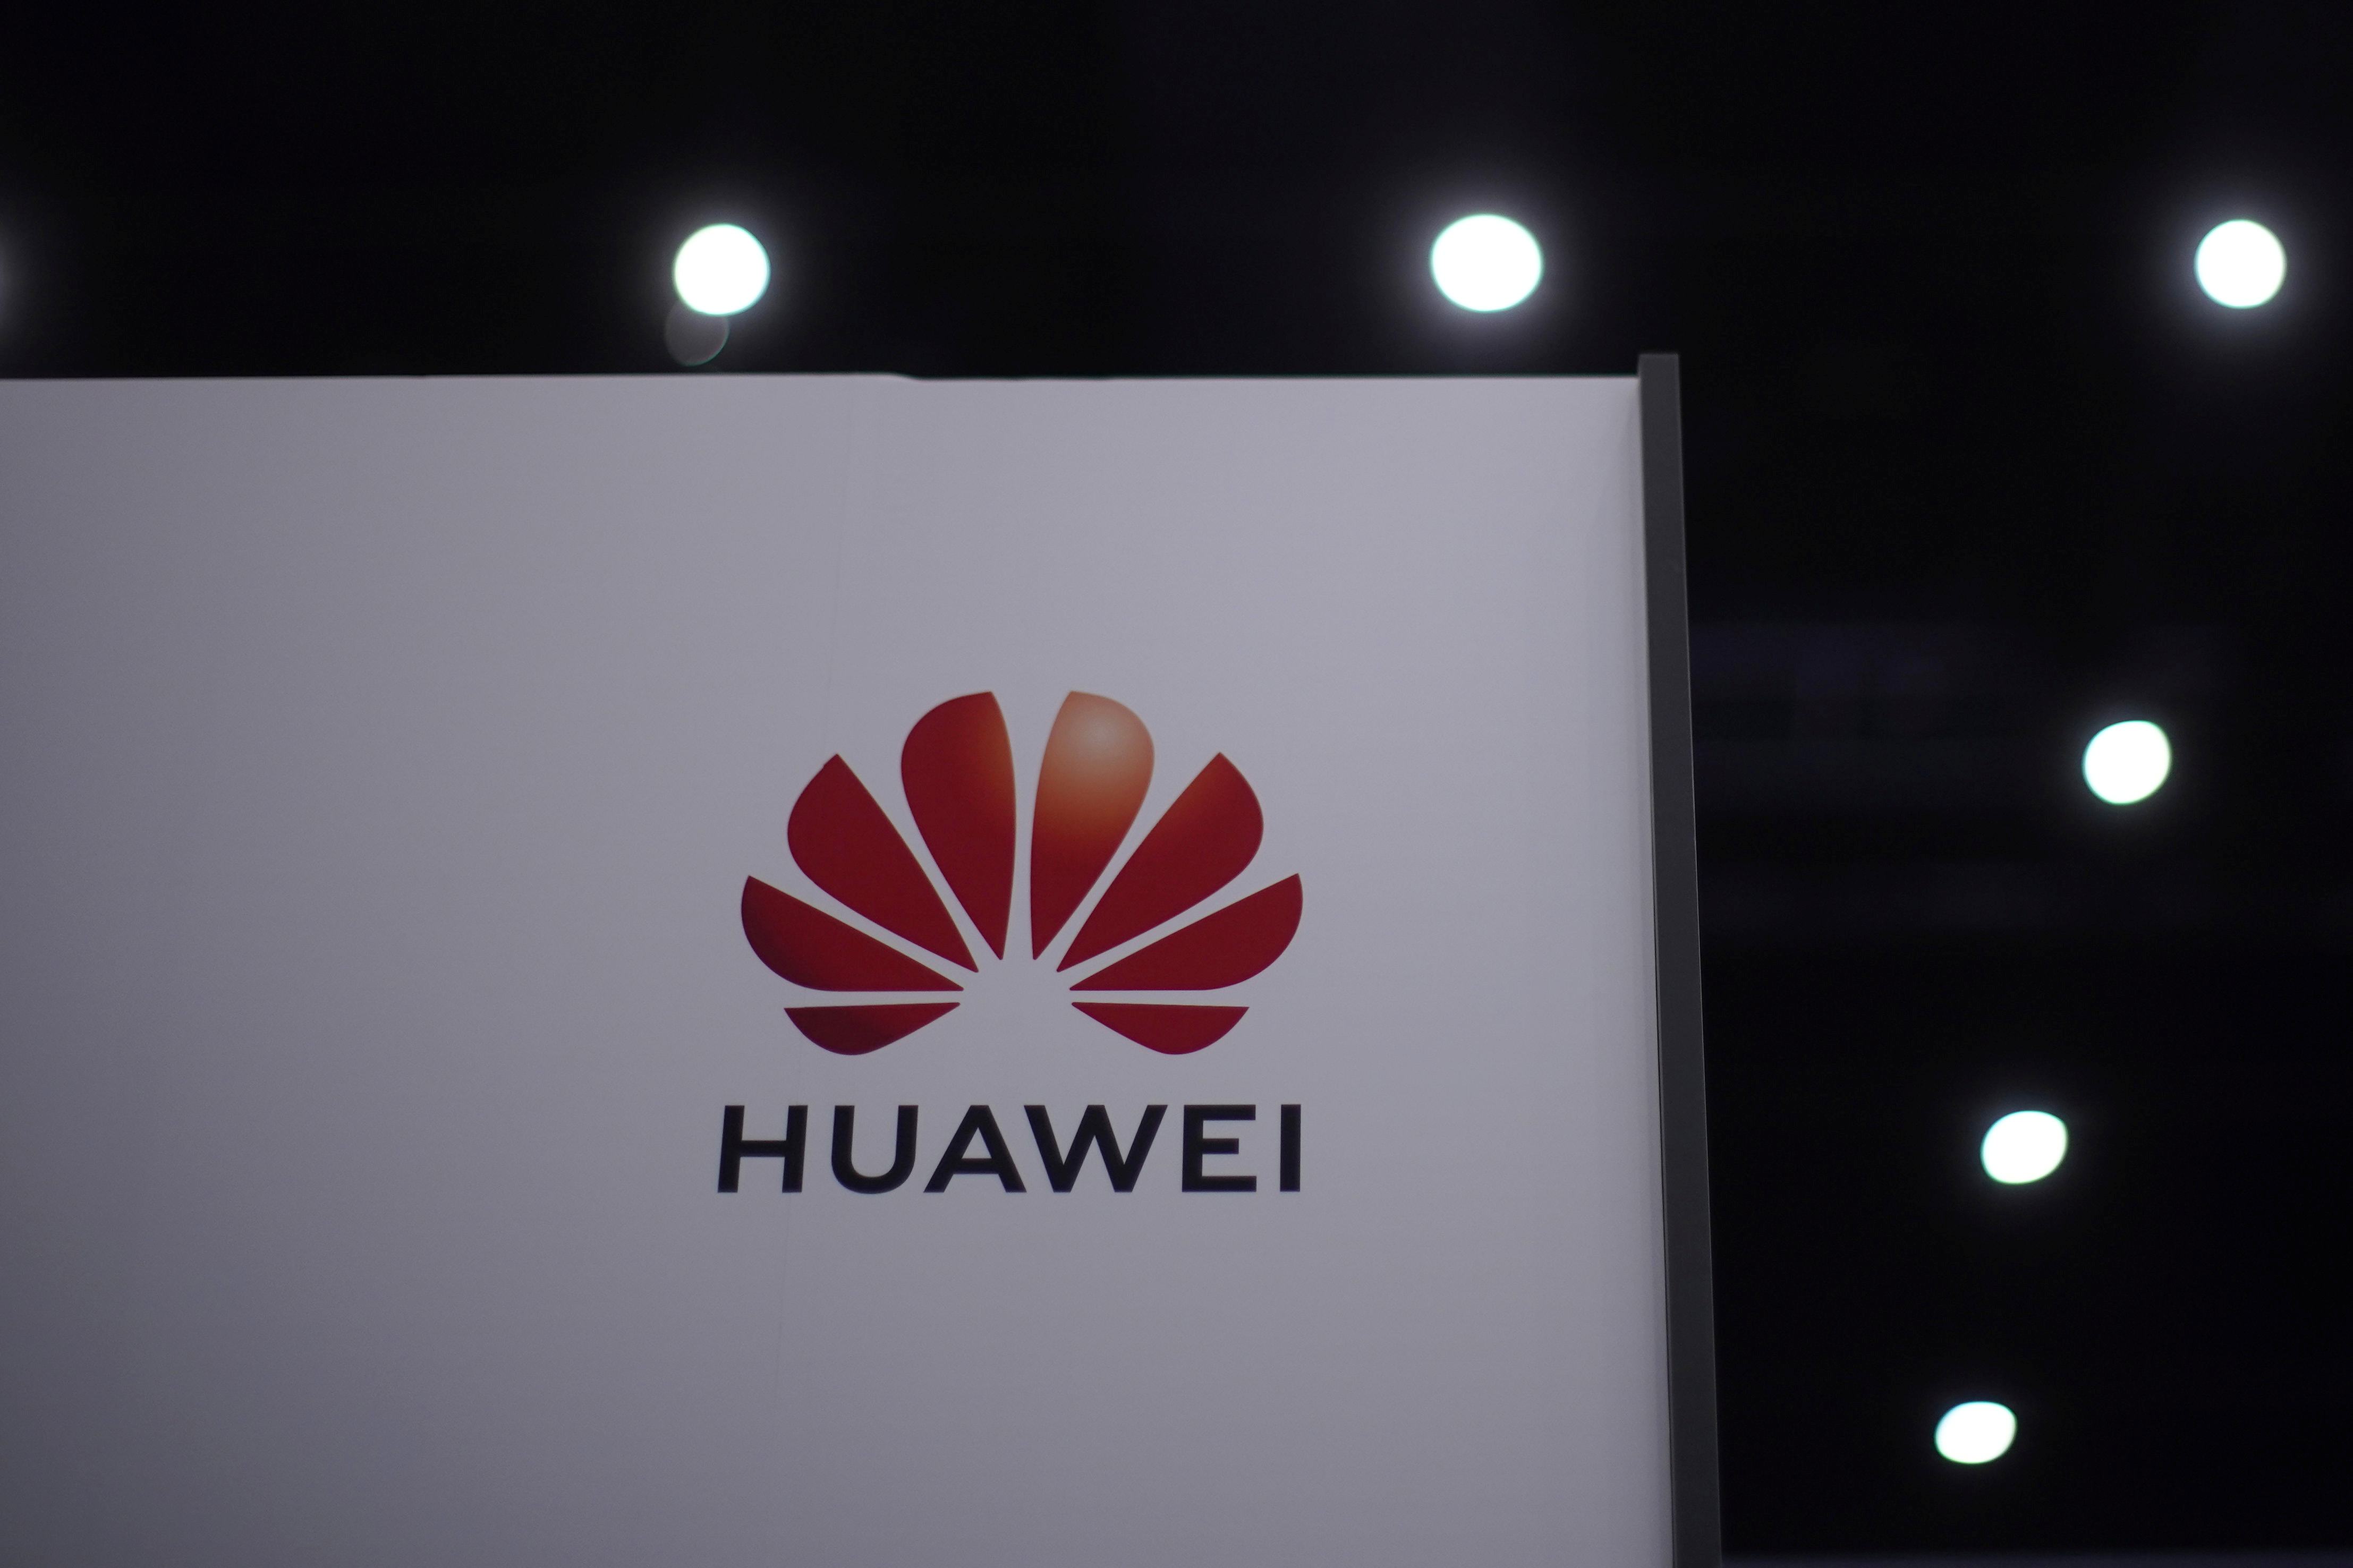 The Huawei logo is seen at Huawei Connect in Shanghai, China, September 23, 2020. REUTERS/Aly Song